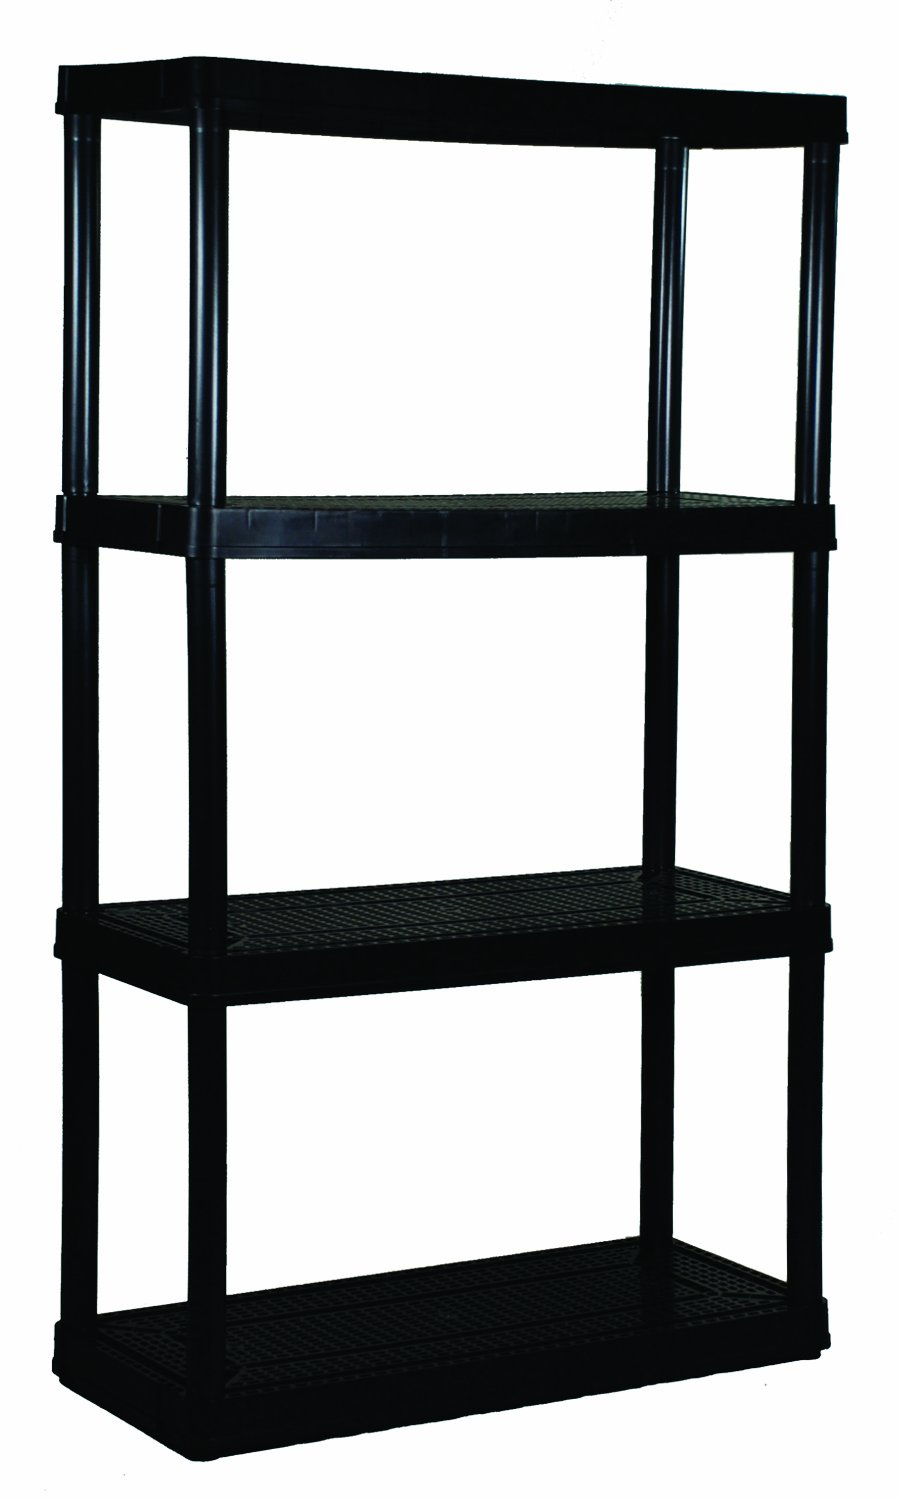 Gracious Living 4-Shelf Medium Duty Shelf Unit by Gracious Living